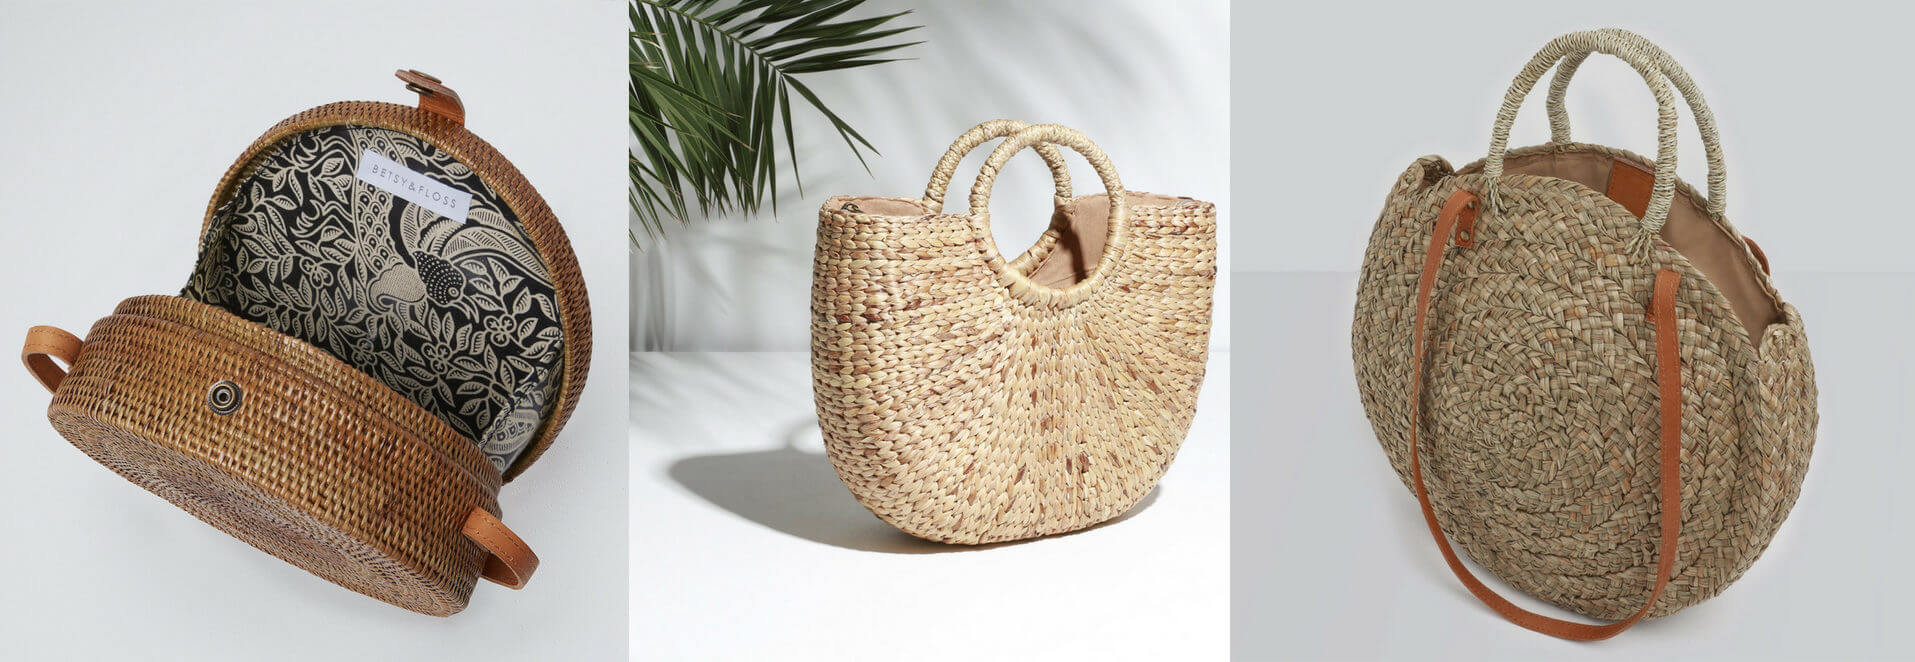 Betsy and Floss Straw Basket Bags Palermo Ischia and Corfu